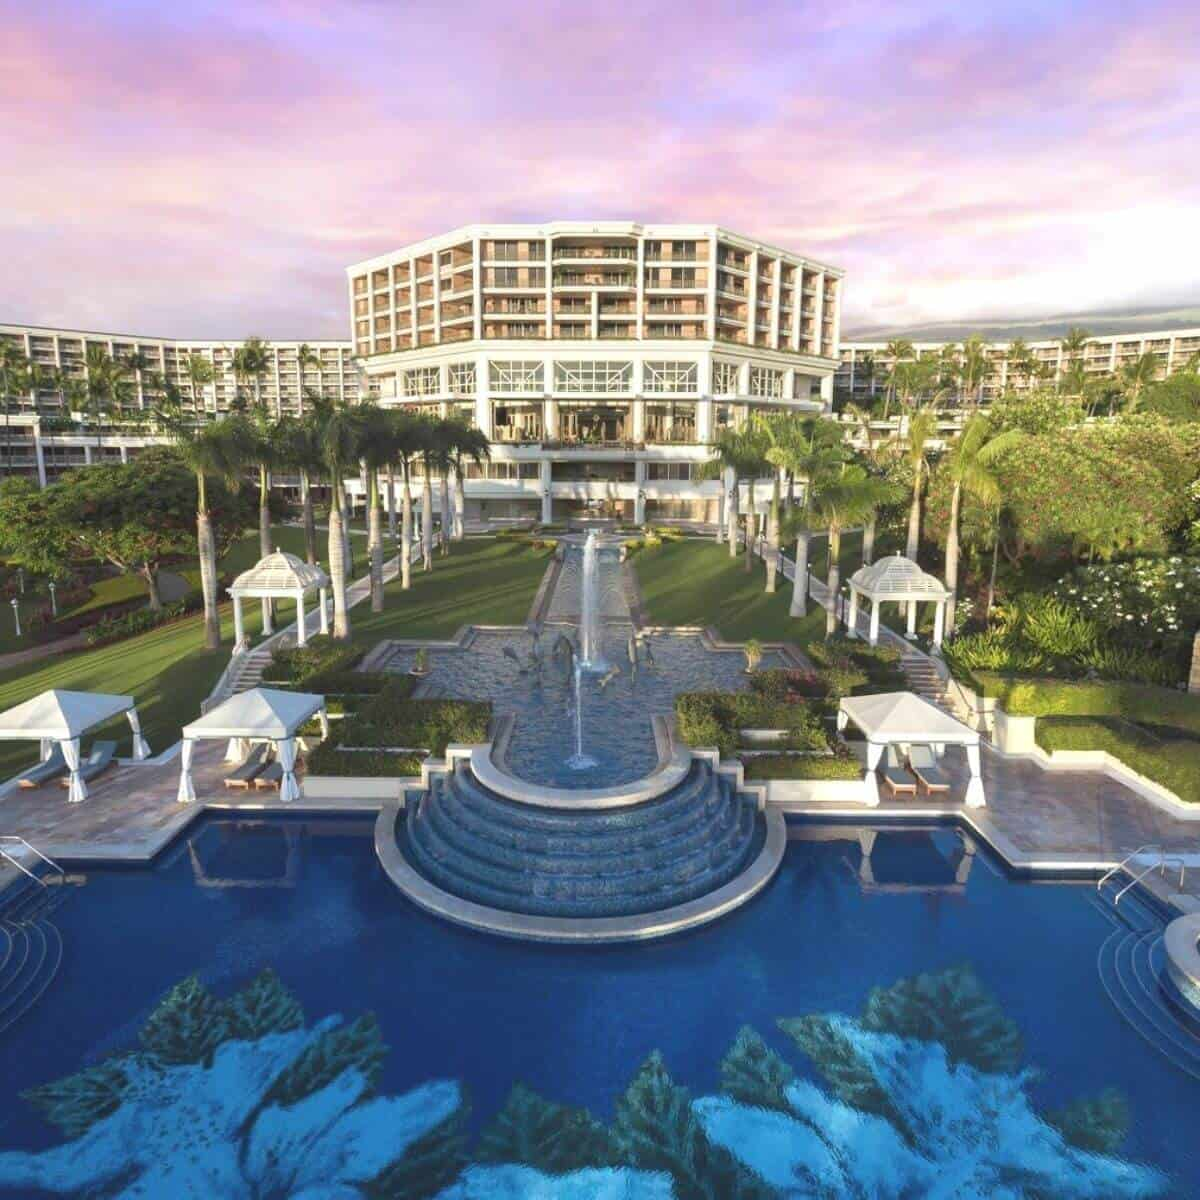 Front view of the Grand Wailea Maui Resort, the pool, and fountains.